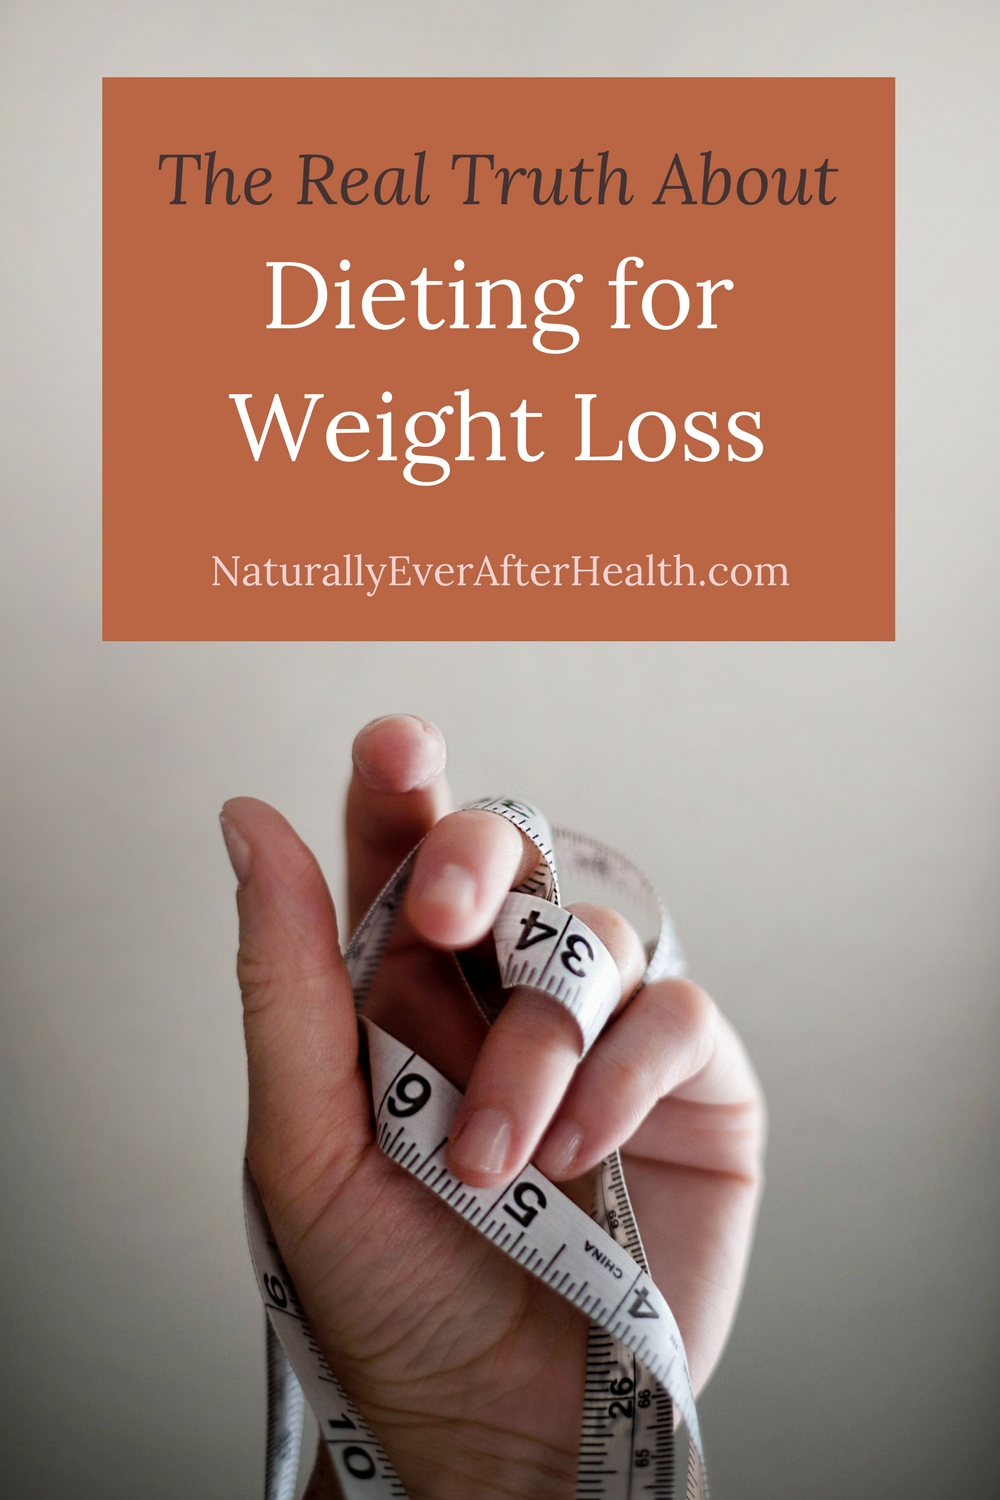 Are you thinking about going on another diet? Read this first! Learn how weight loss diet plans affect you physically and mentally, and what you can do instead.